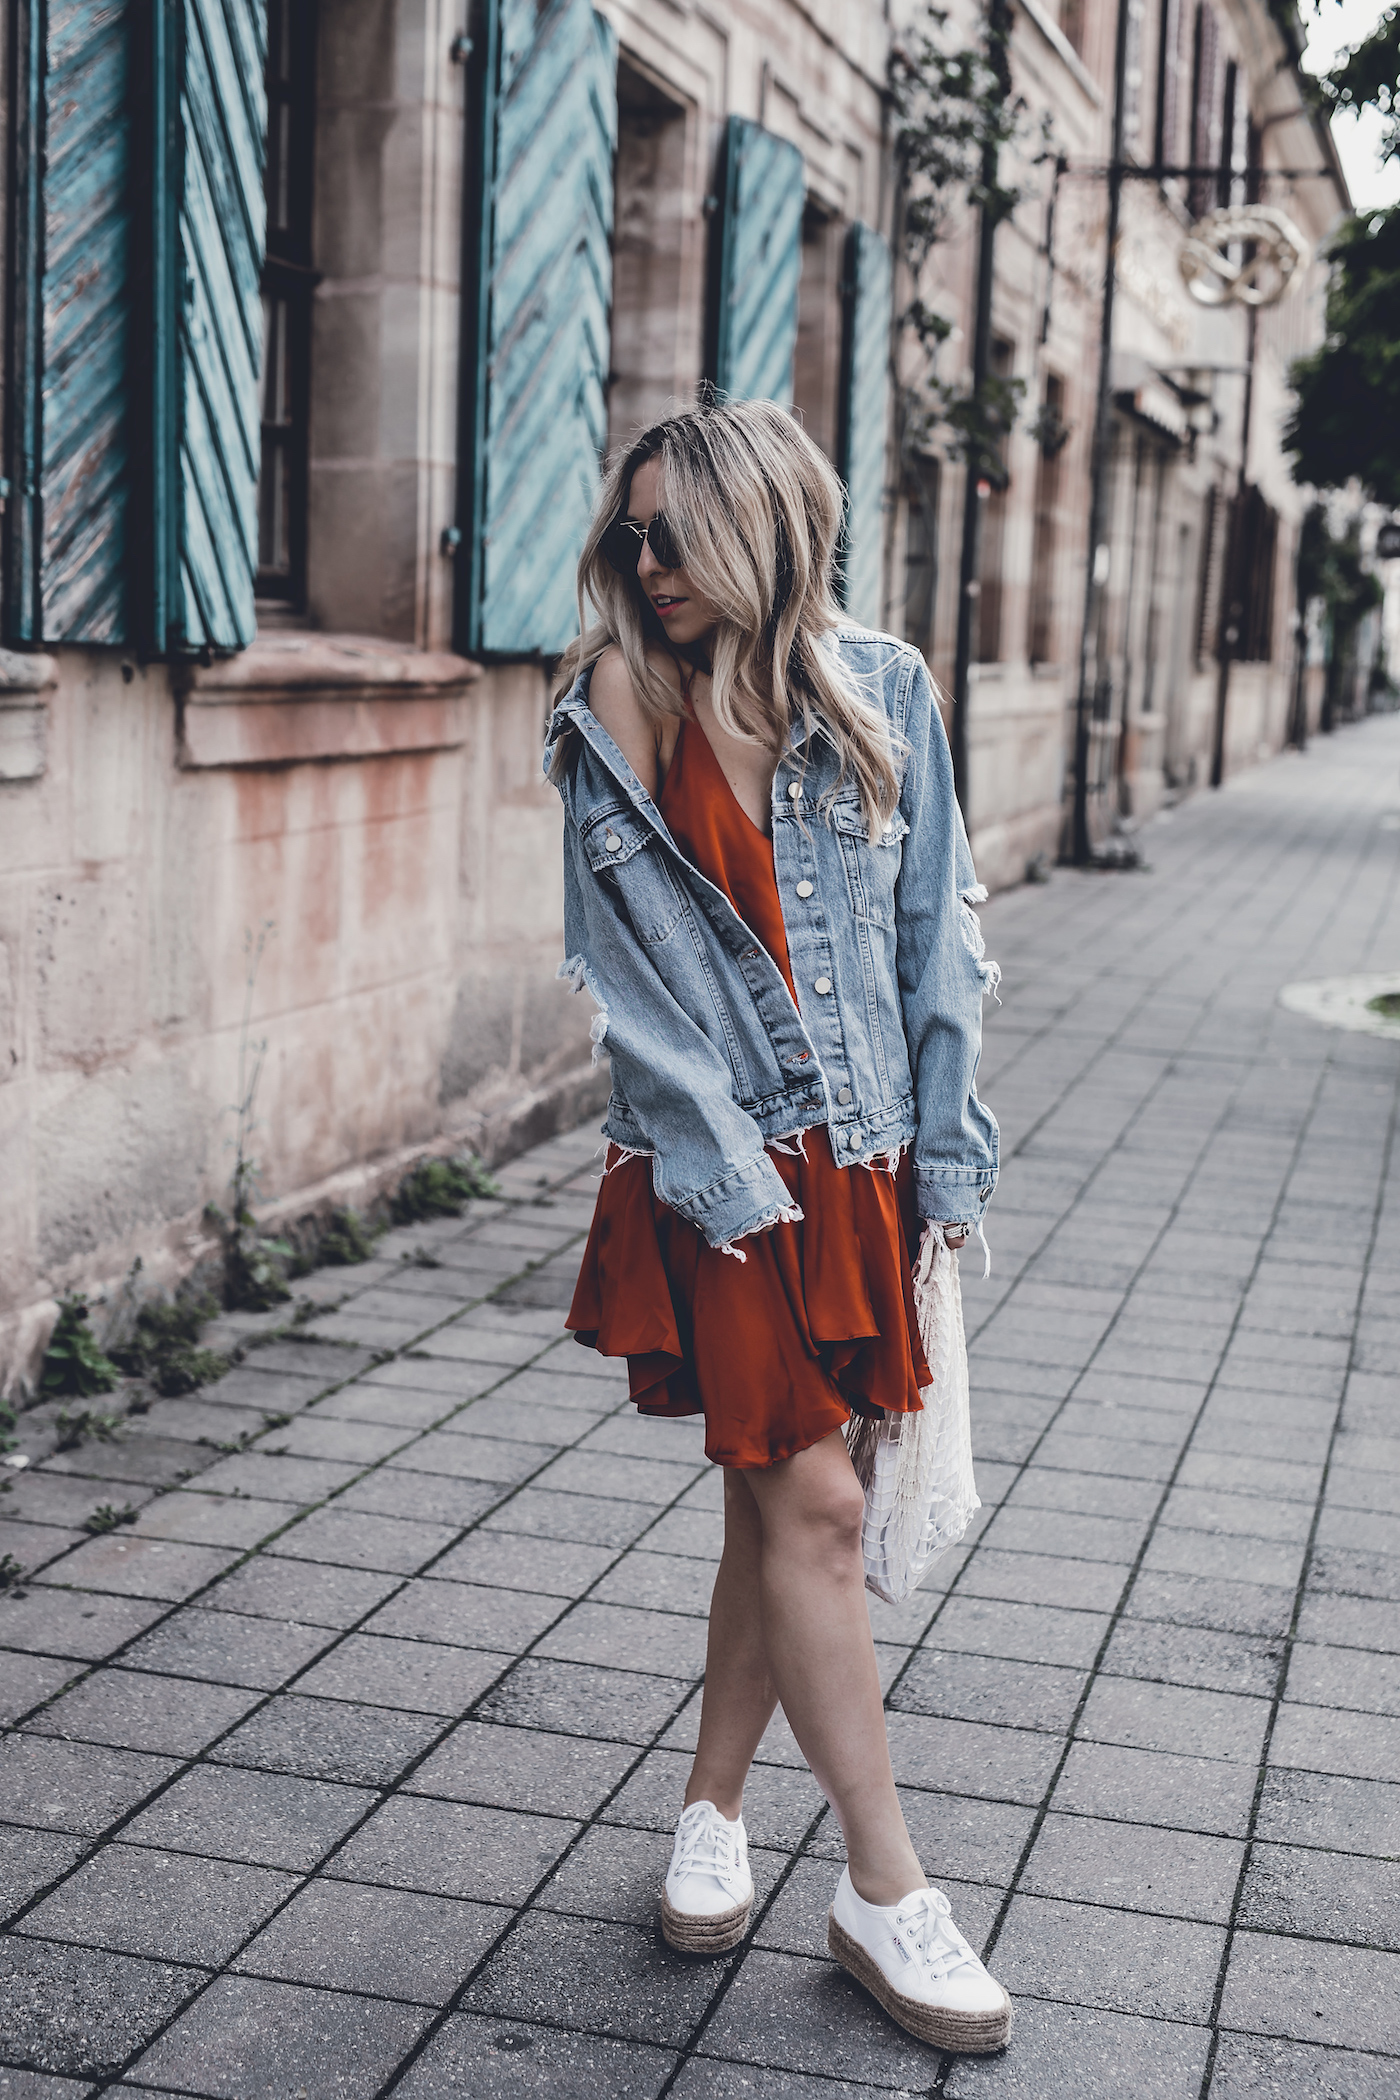 How to fall back in love with your closet wardrobe clothes | Want Get Repeat Fashion Blog Erlangen Nürnberg Mode Blog